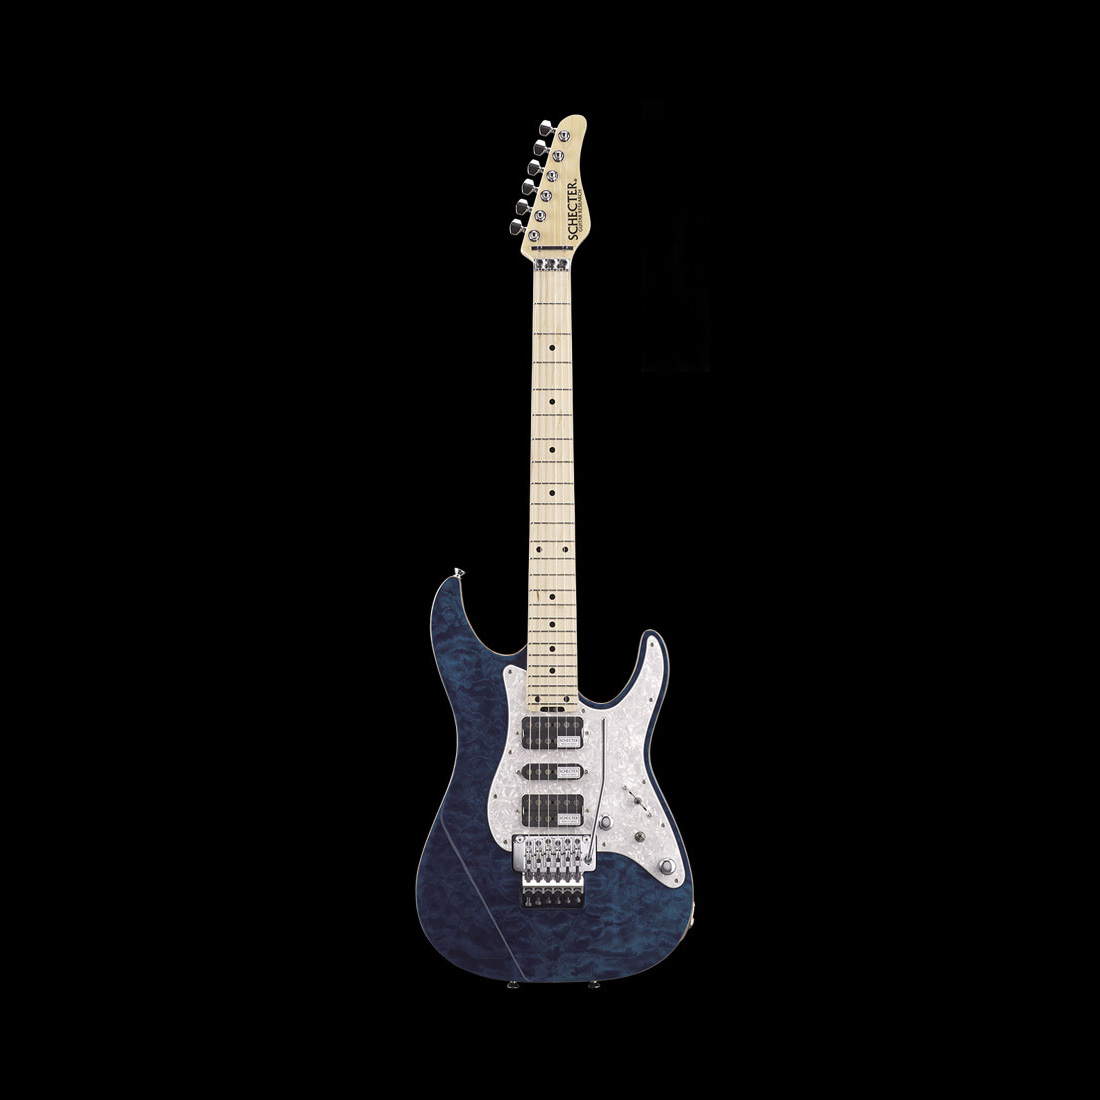 Schecter / SD-2-24-AL-M See Thru Blue シェクター エレキギター